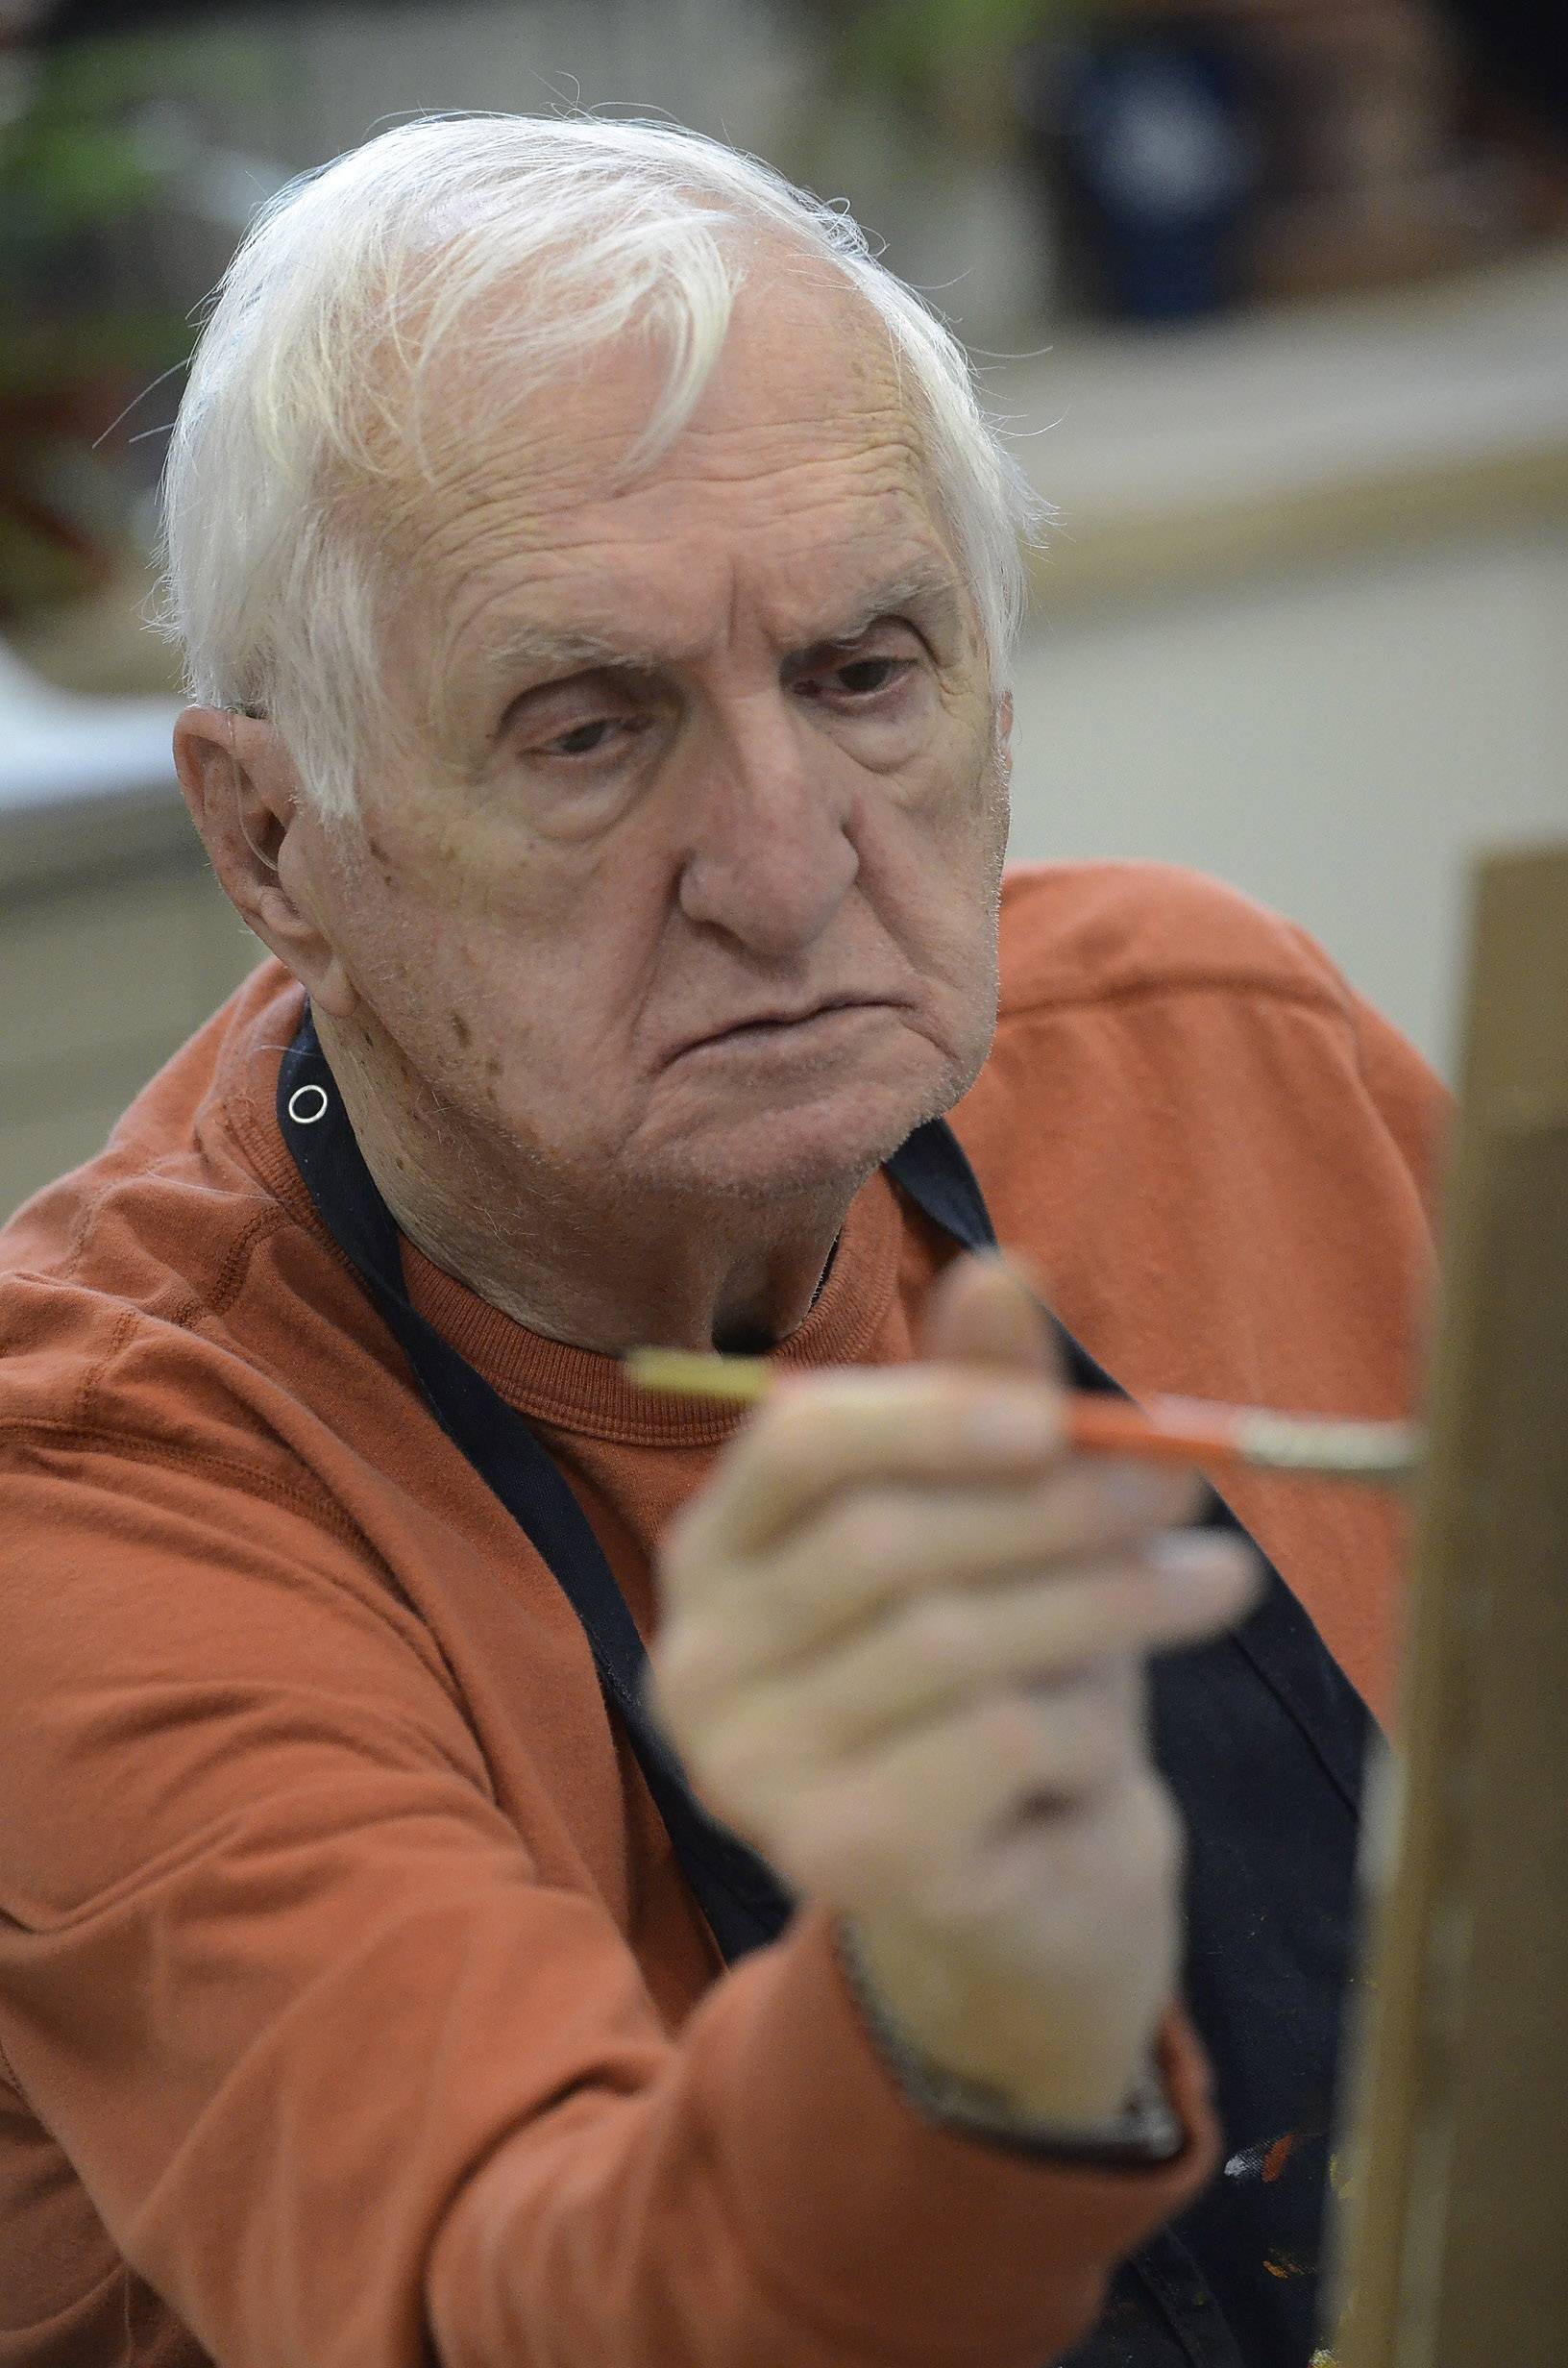 83-year-old painting student Chuck McCann of Round Lake Beach, who suffers from Parkinson's disease, works during art class at College of Lake County.